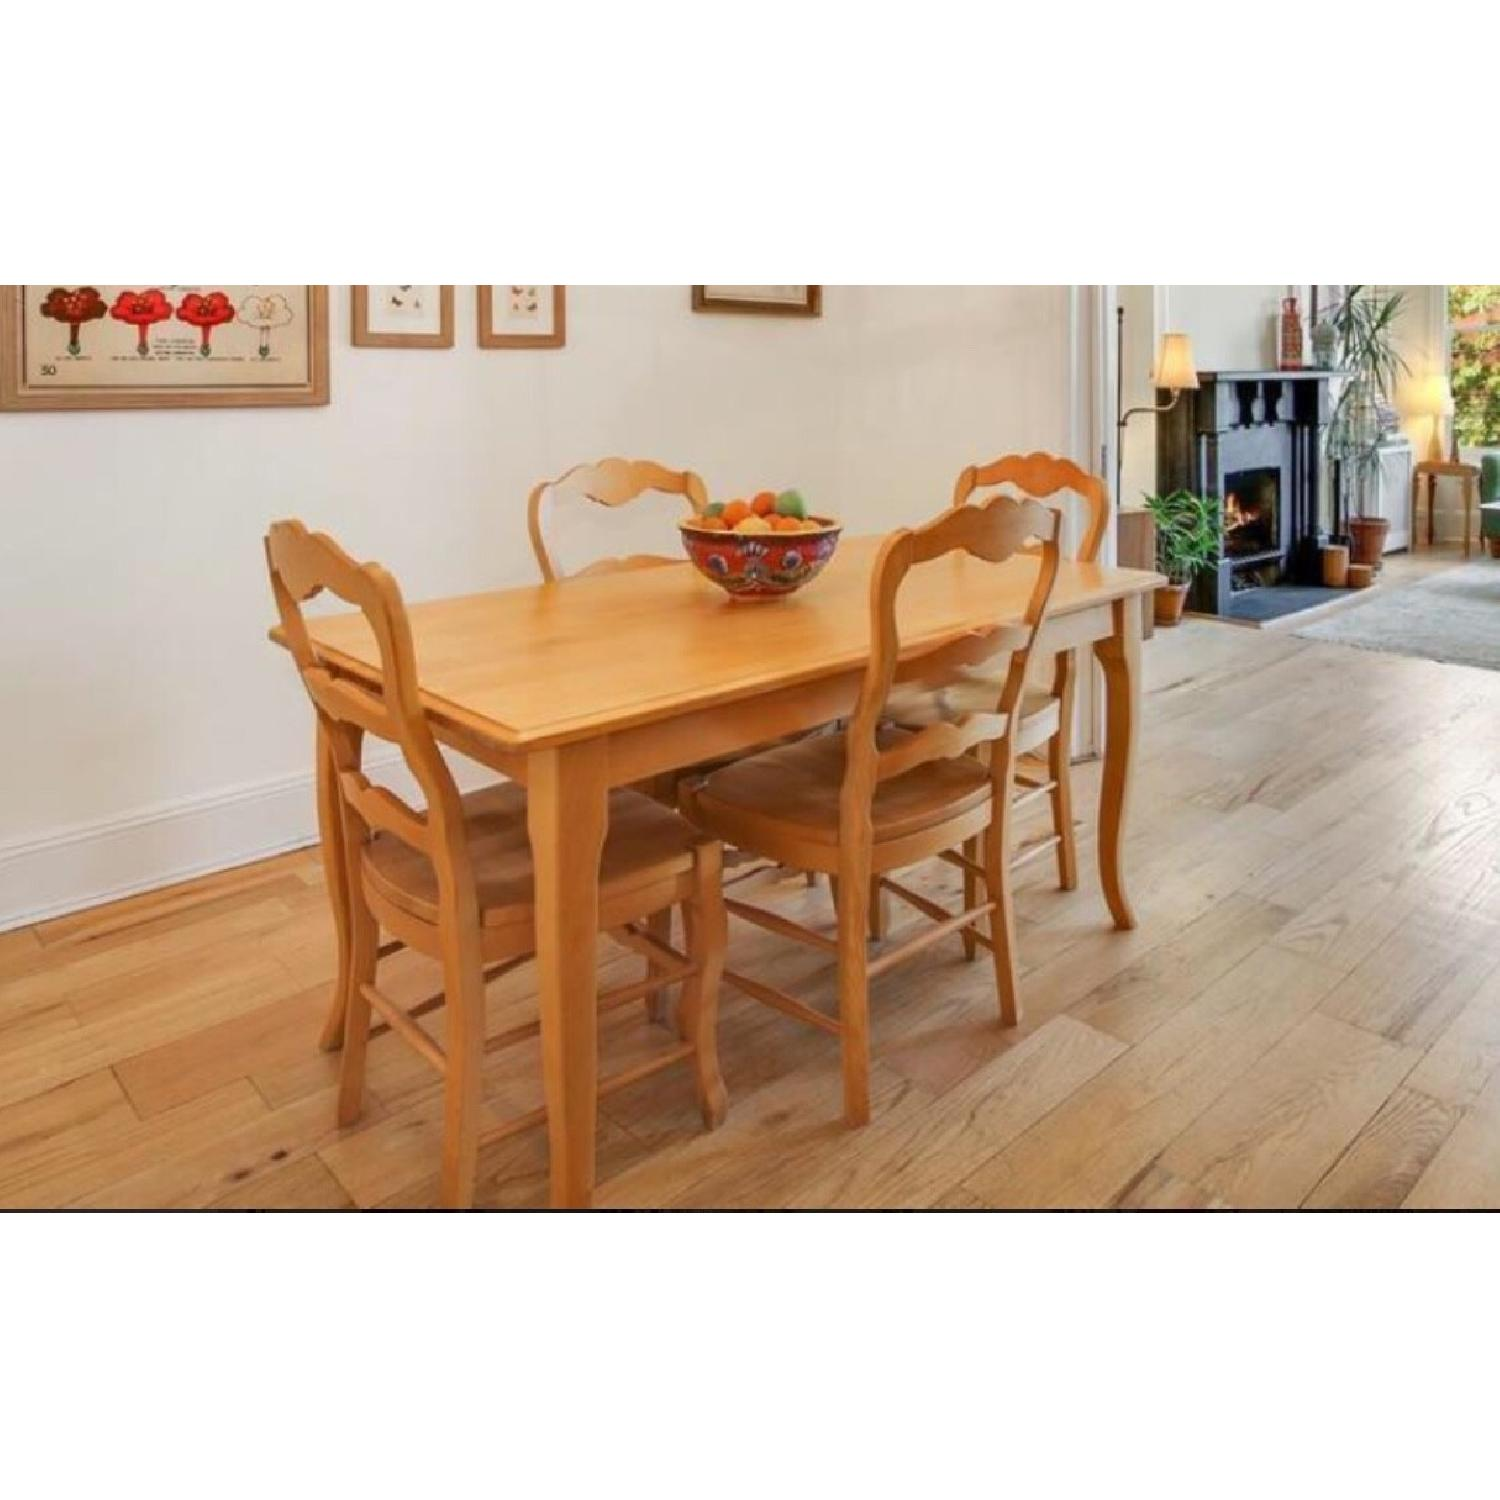 Queen Anne Revival Dining Table W 4 Chairs